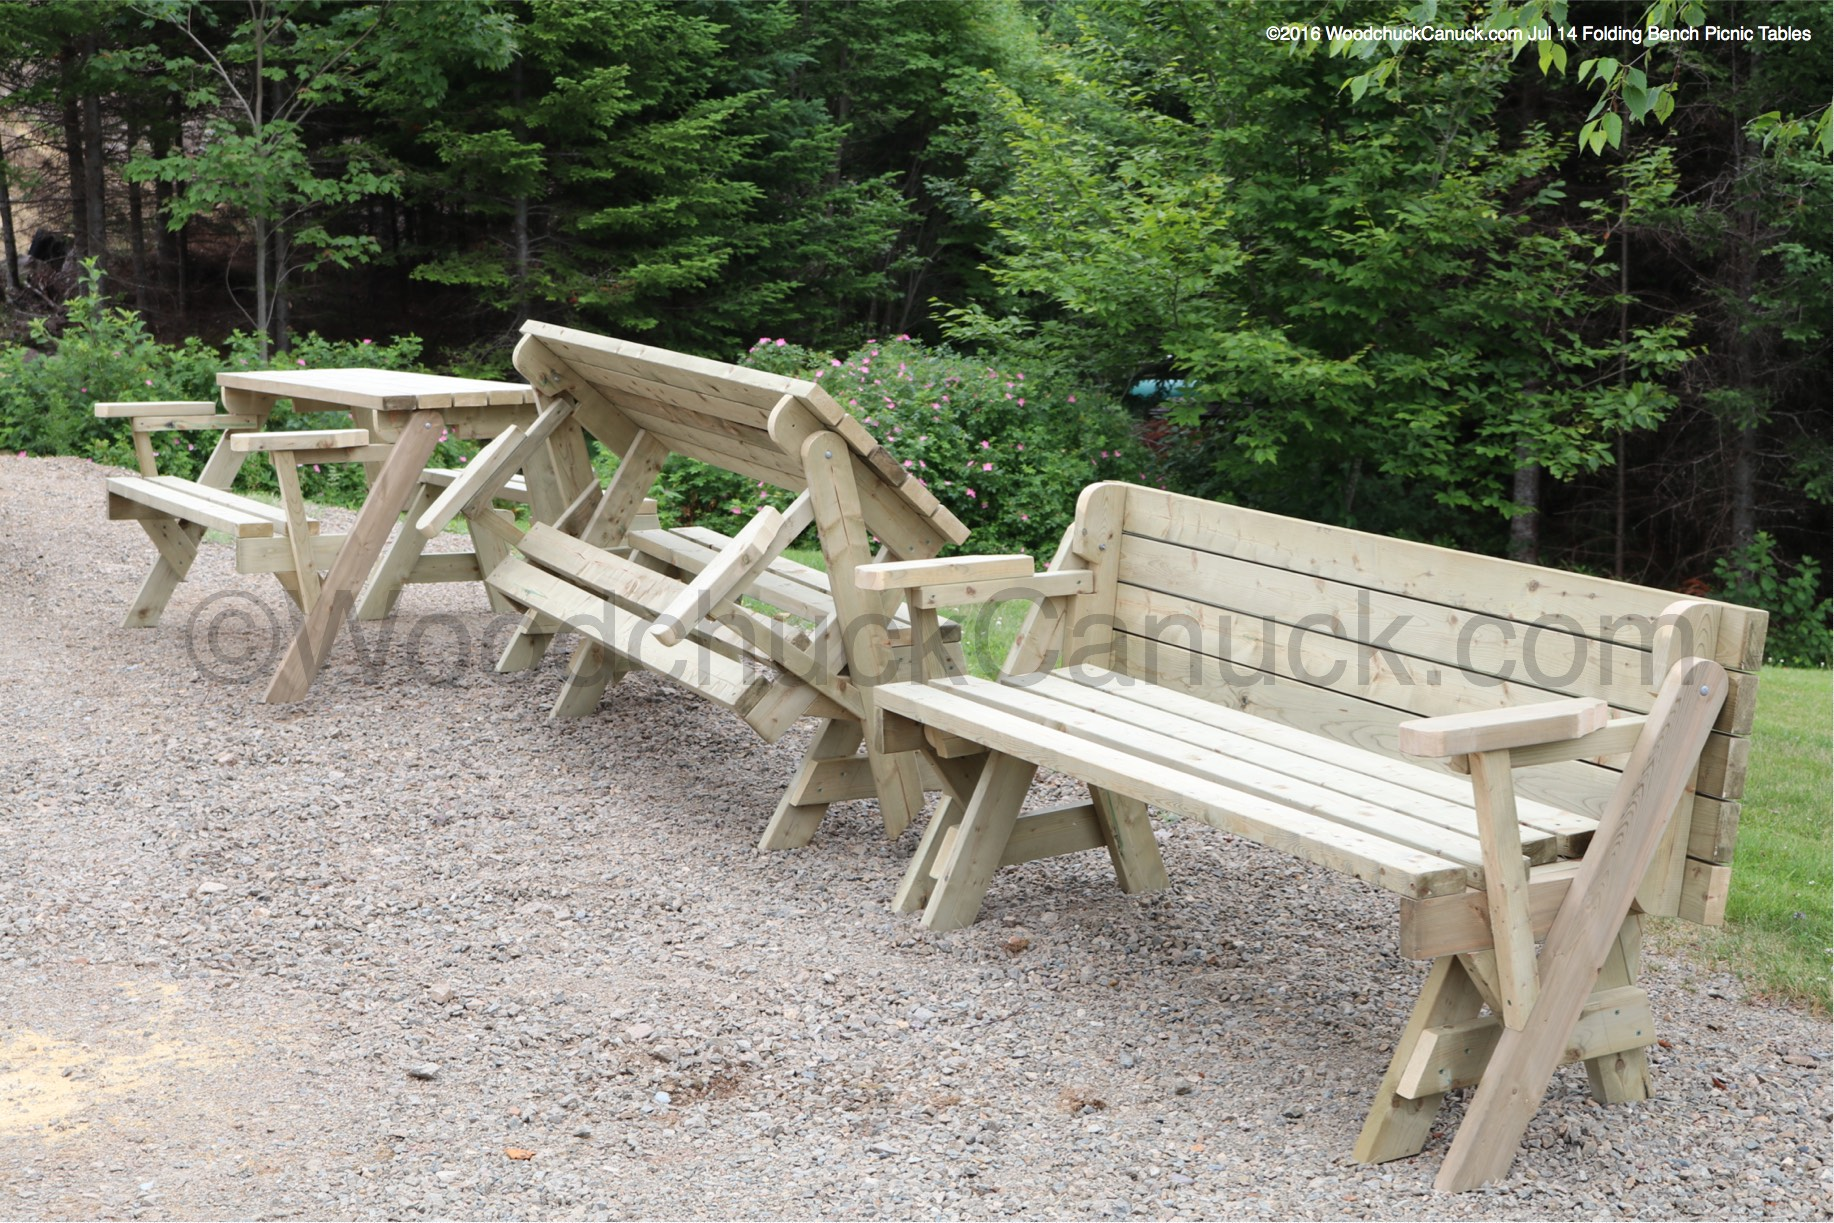 folding chair picnic table pop up blind chairs bench  woodchuckcanuck